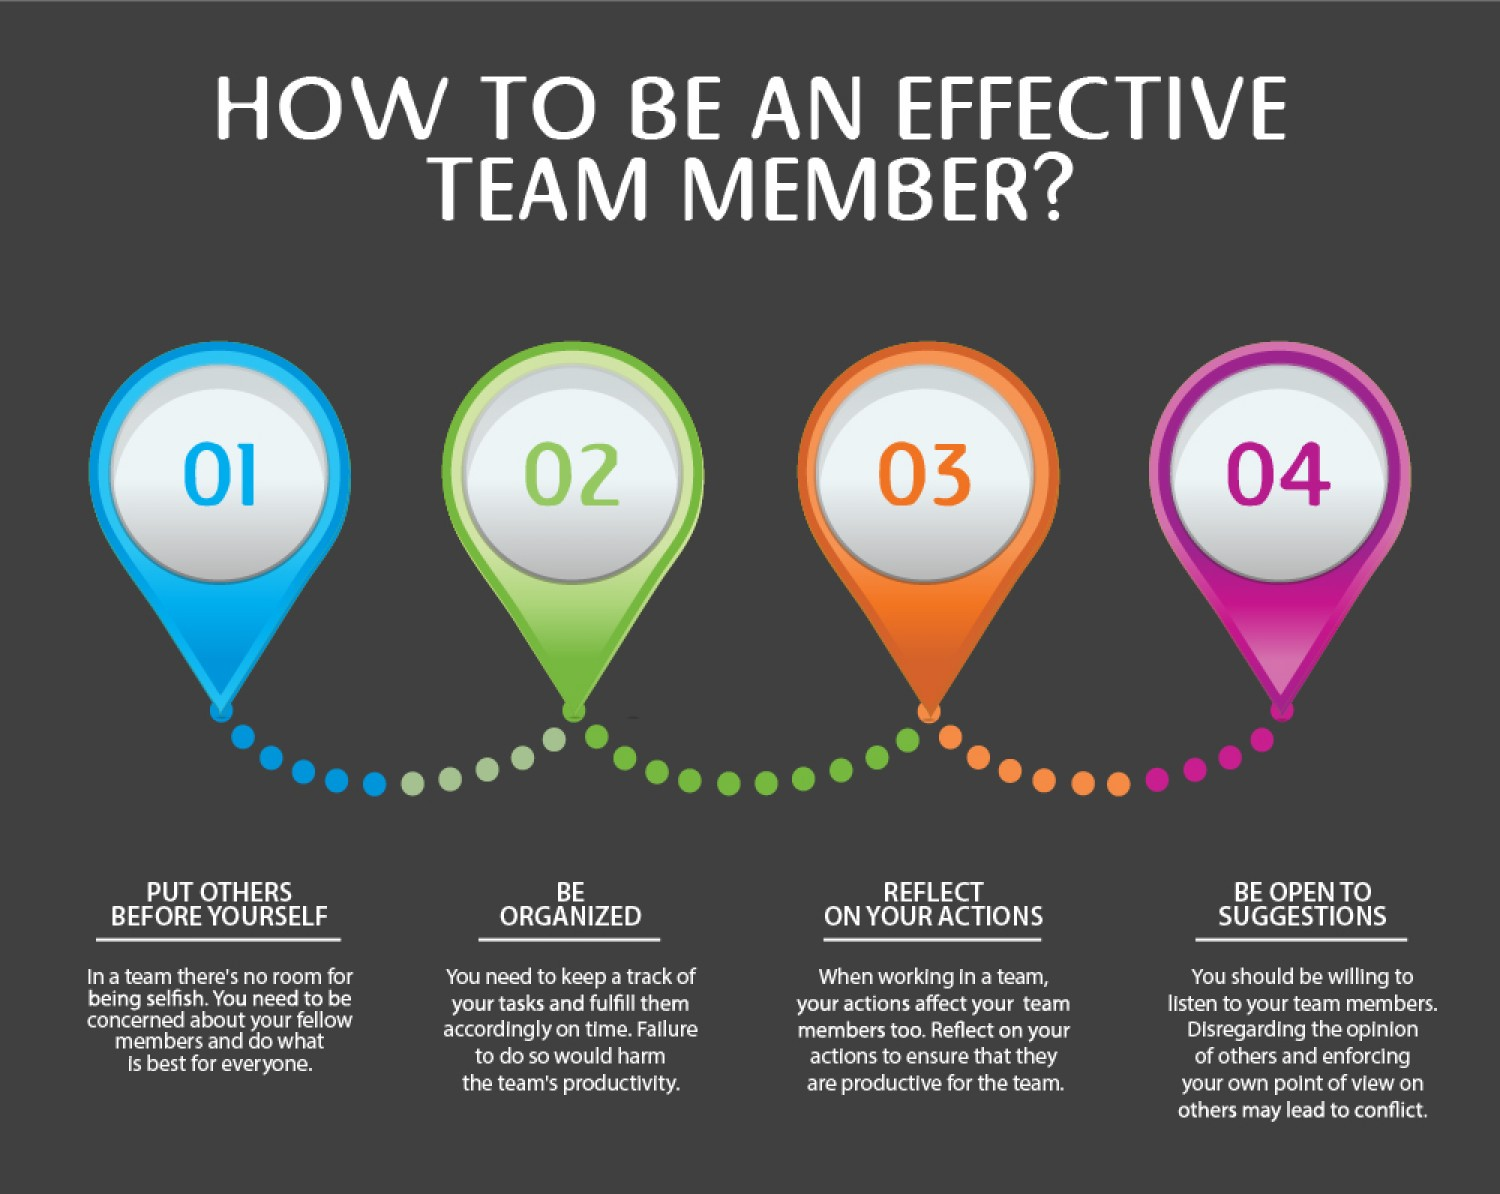 We are the best team quotes quotesgram - Good Quotes On Team Member Quotesgram